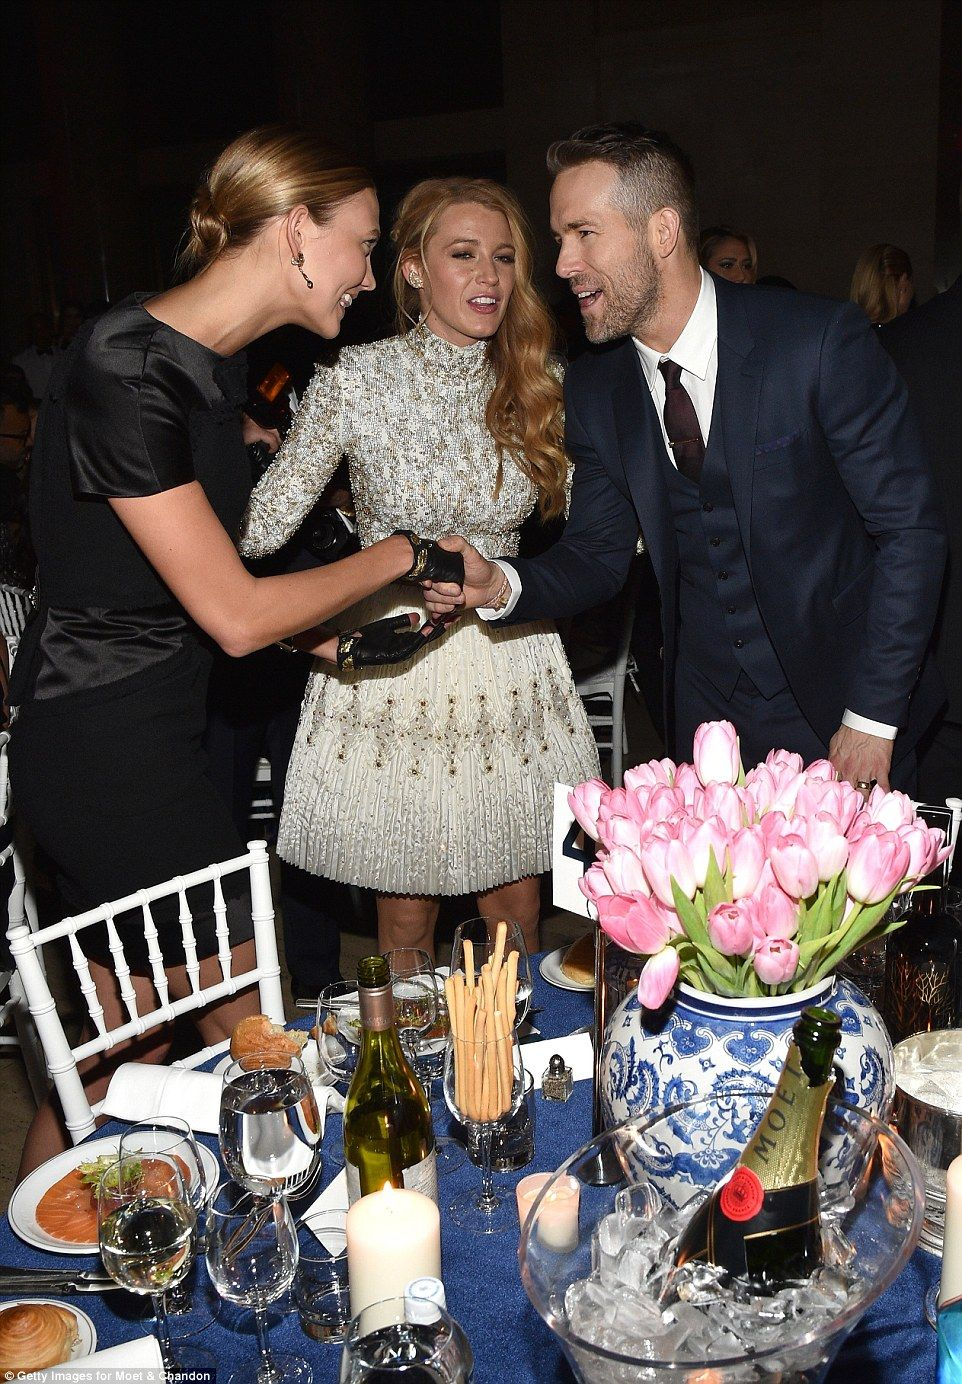 Blake Lively stares lovingly into the eyes of husband Ryan